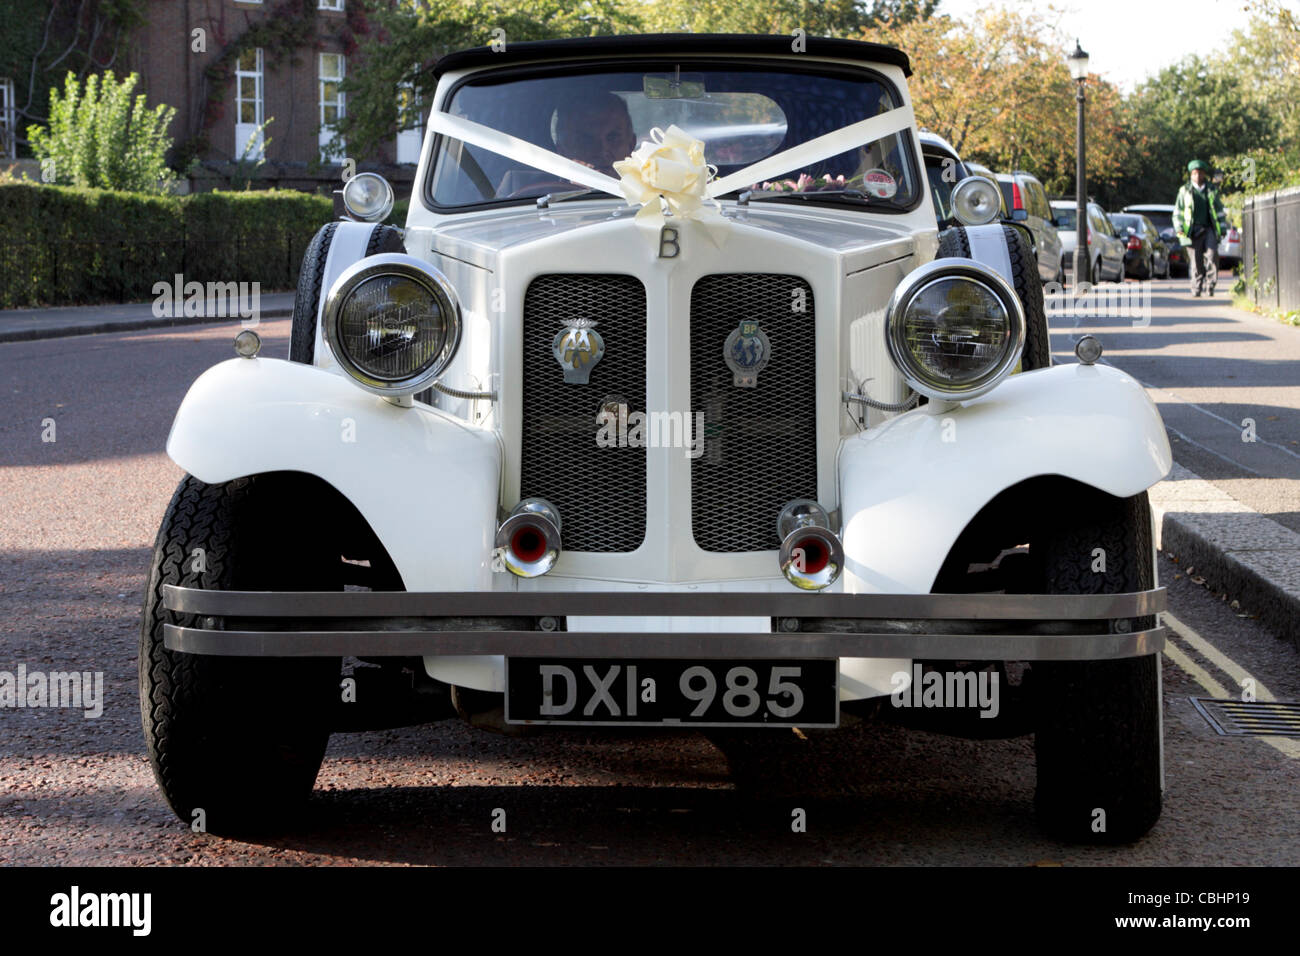 White wedding vehicle parked in inner Circle Regents Park awaiting the happy couple. Believe it or not, this is - Stock Image